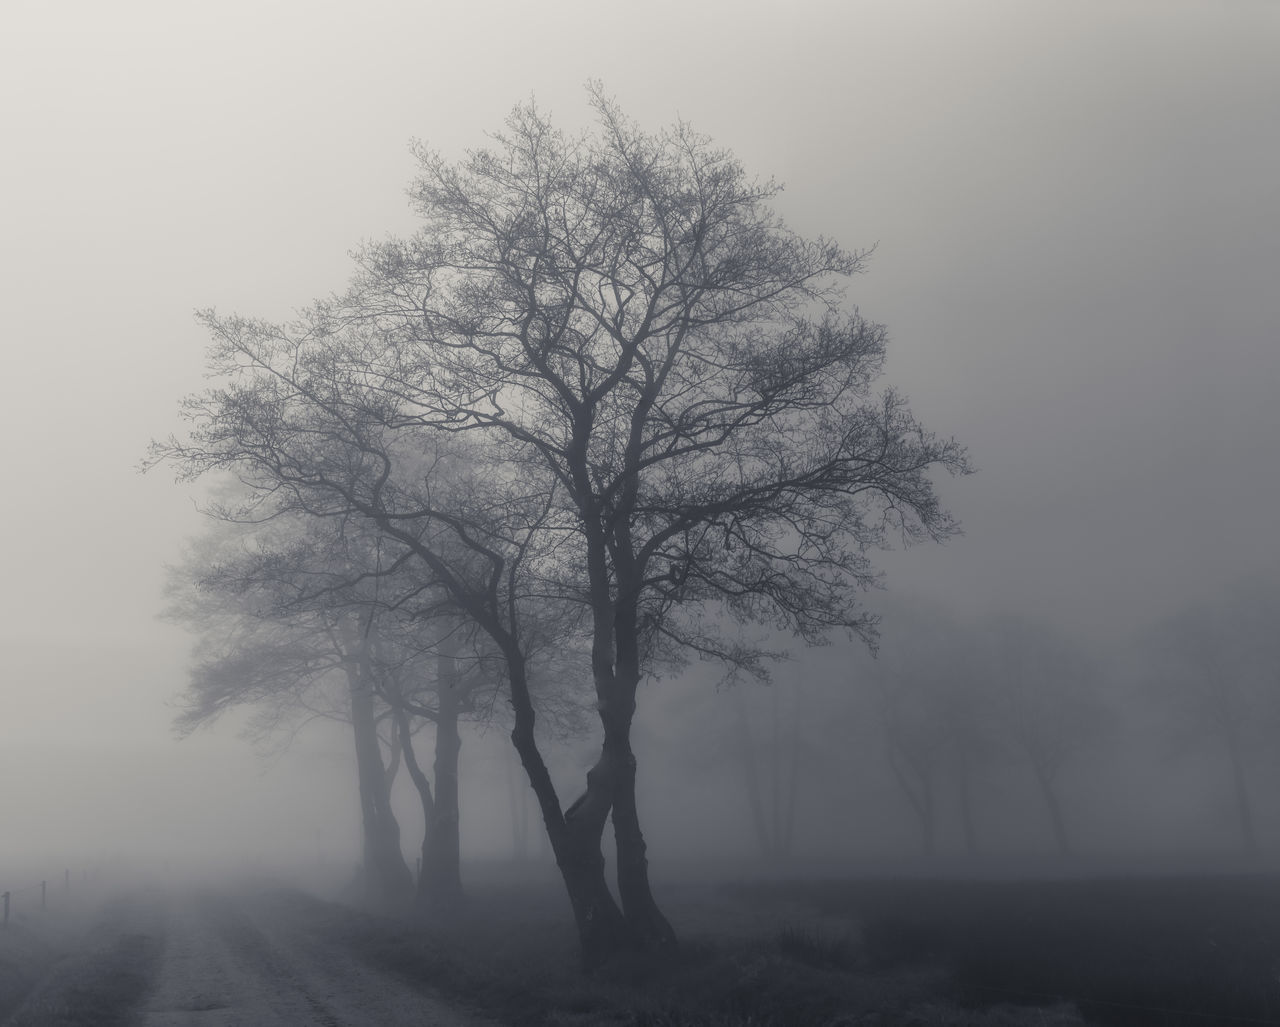 fog, tree, mist, landscape, isolated, tranquility, solitude, bare tree, branch, nature, hazy, lone, tranquil scene, beauty in nature, outdoors, day, no people, bleak